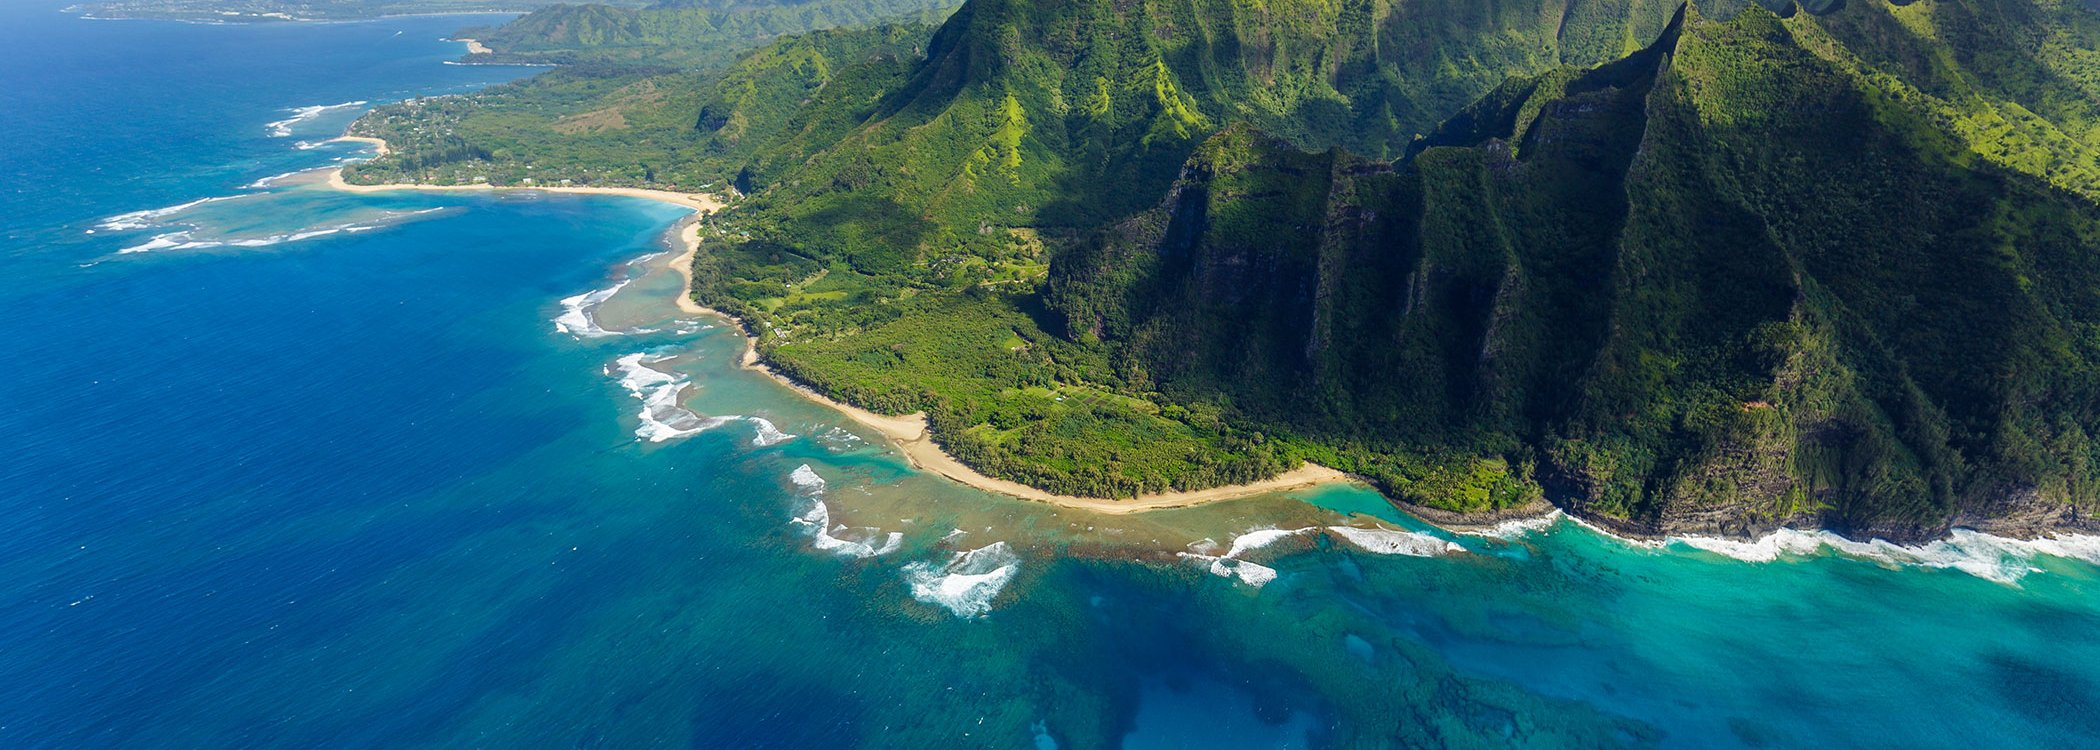 Best Travel Guide Book For Kauai